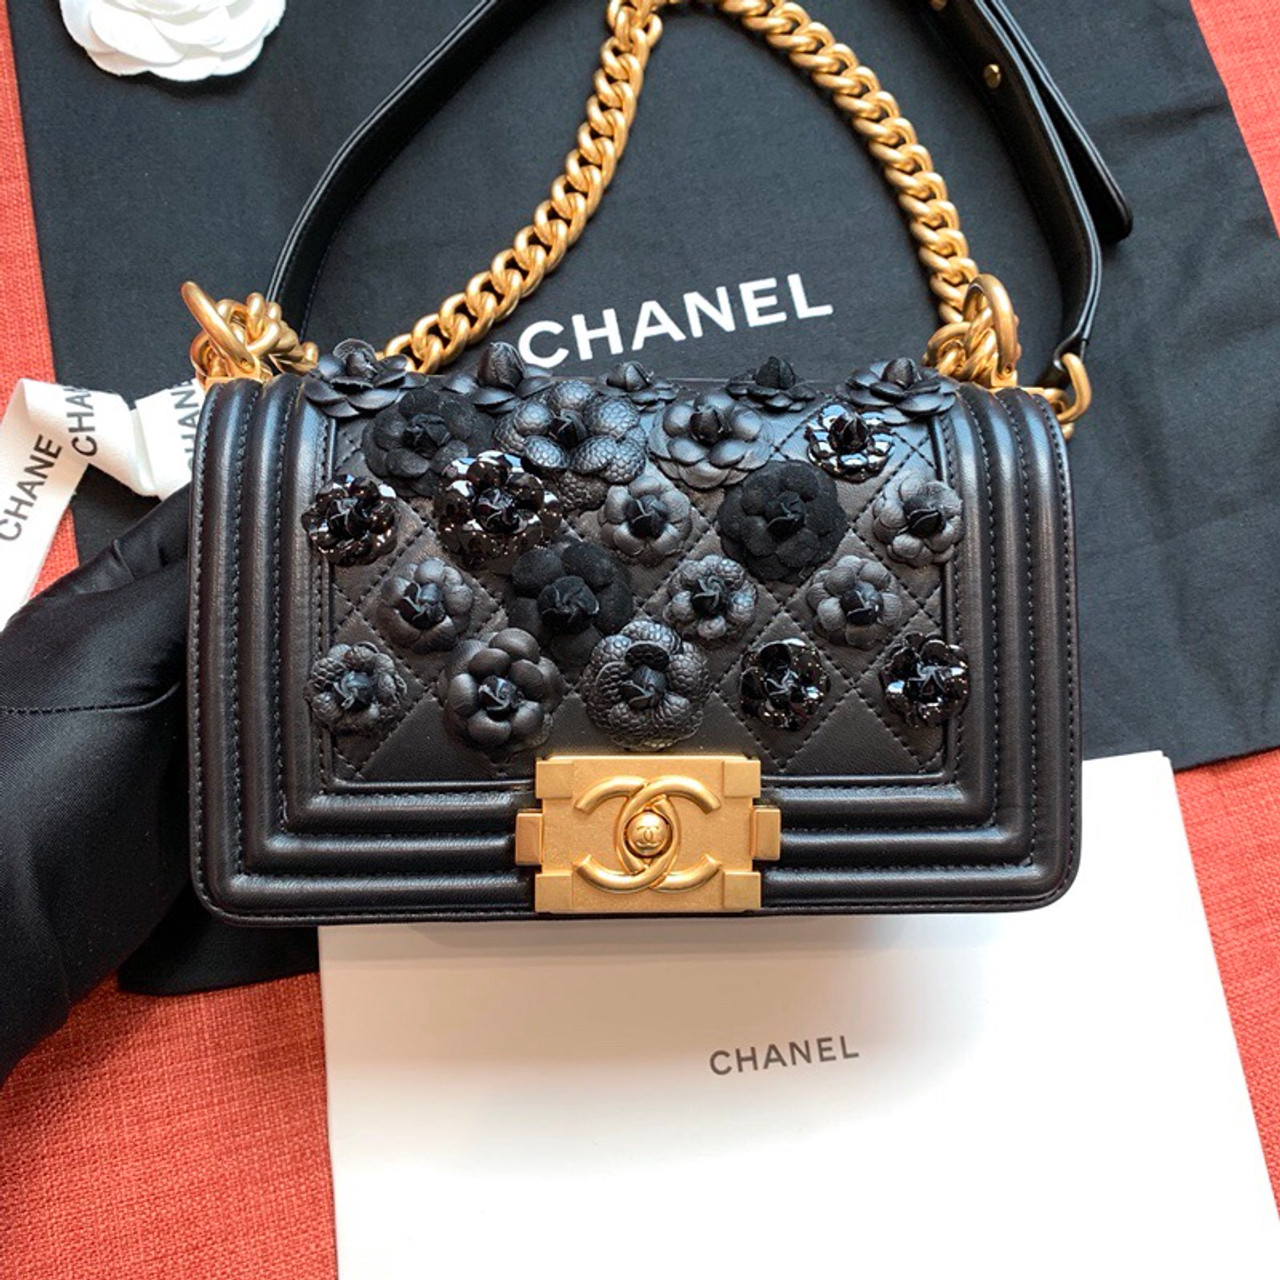 1b8525895975 Chanel Limited Edition Embroidered Small BOY CHANEL Handbag 2019 ...